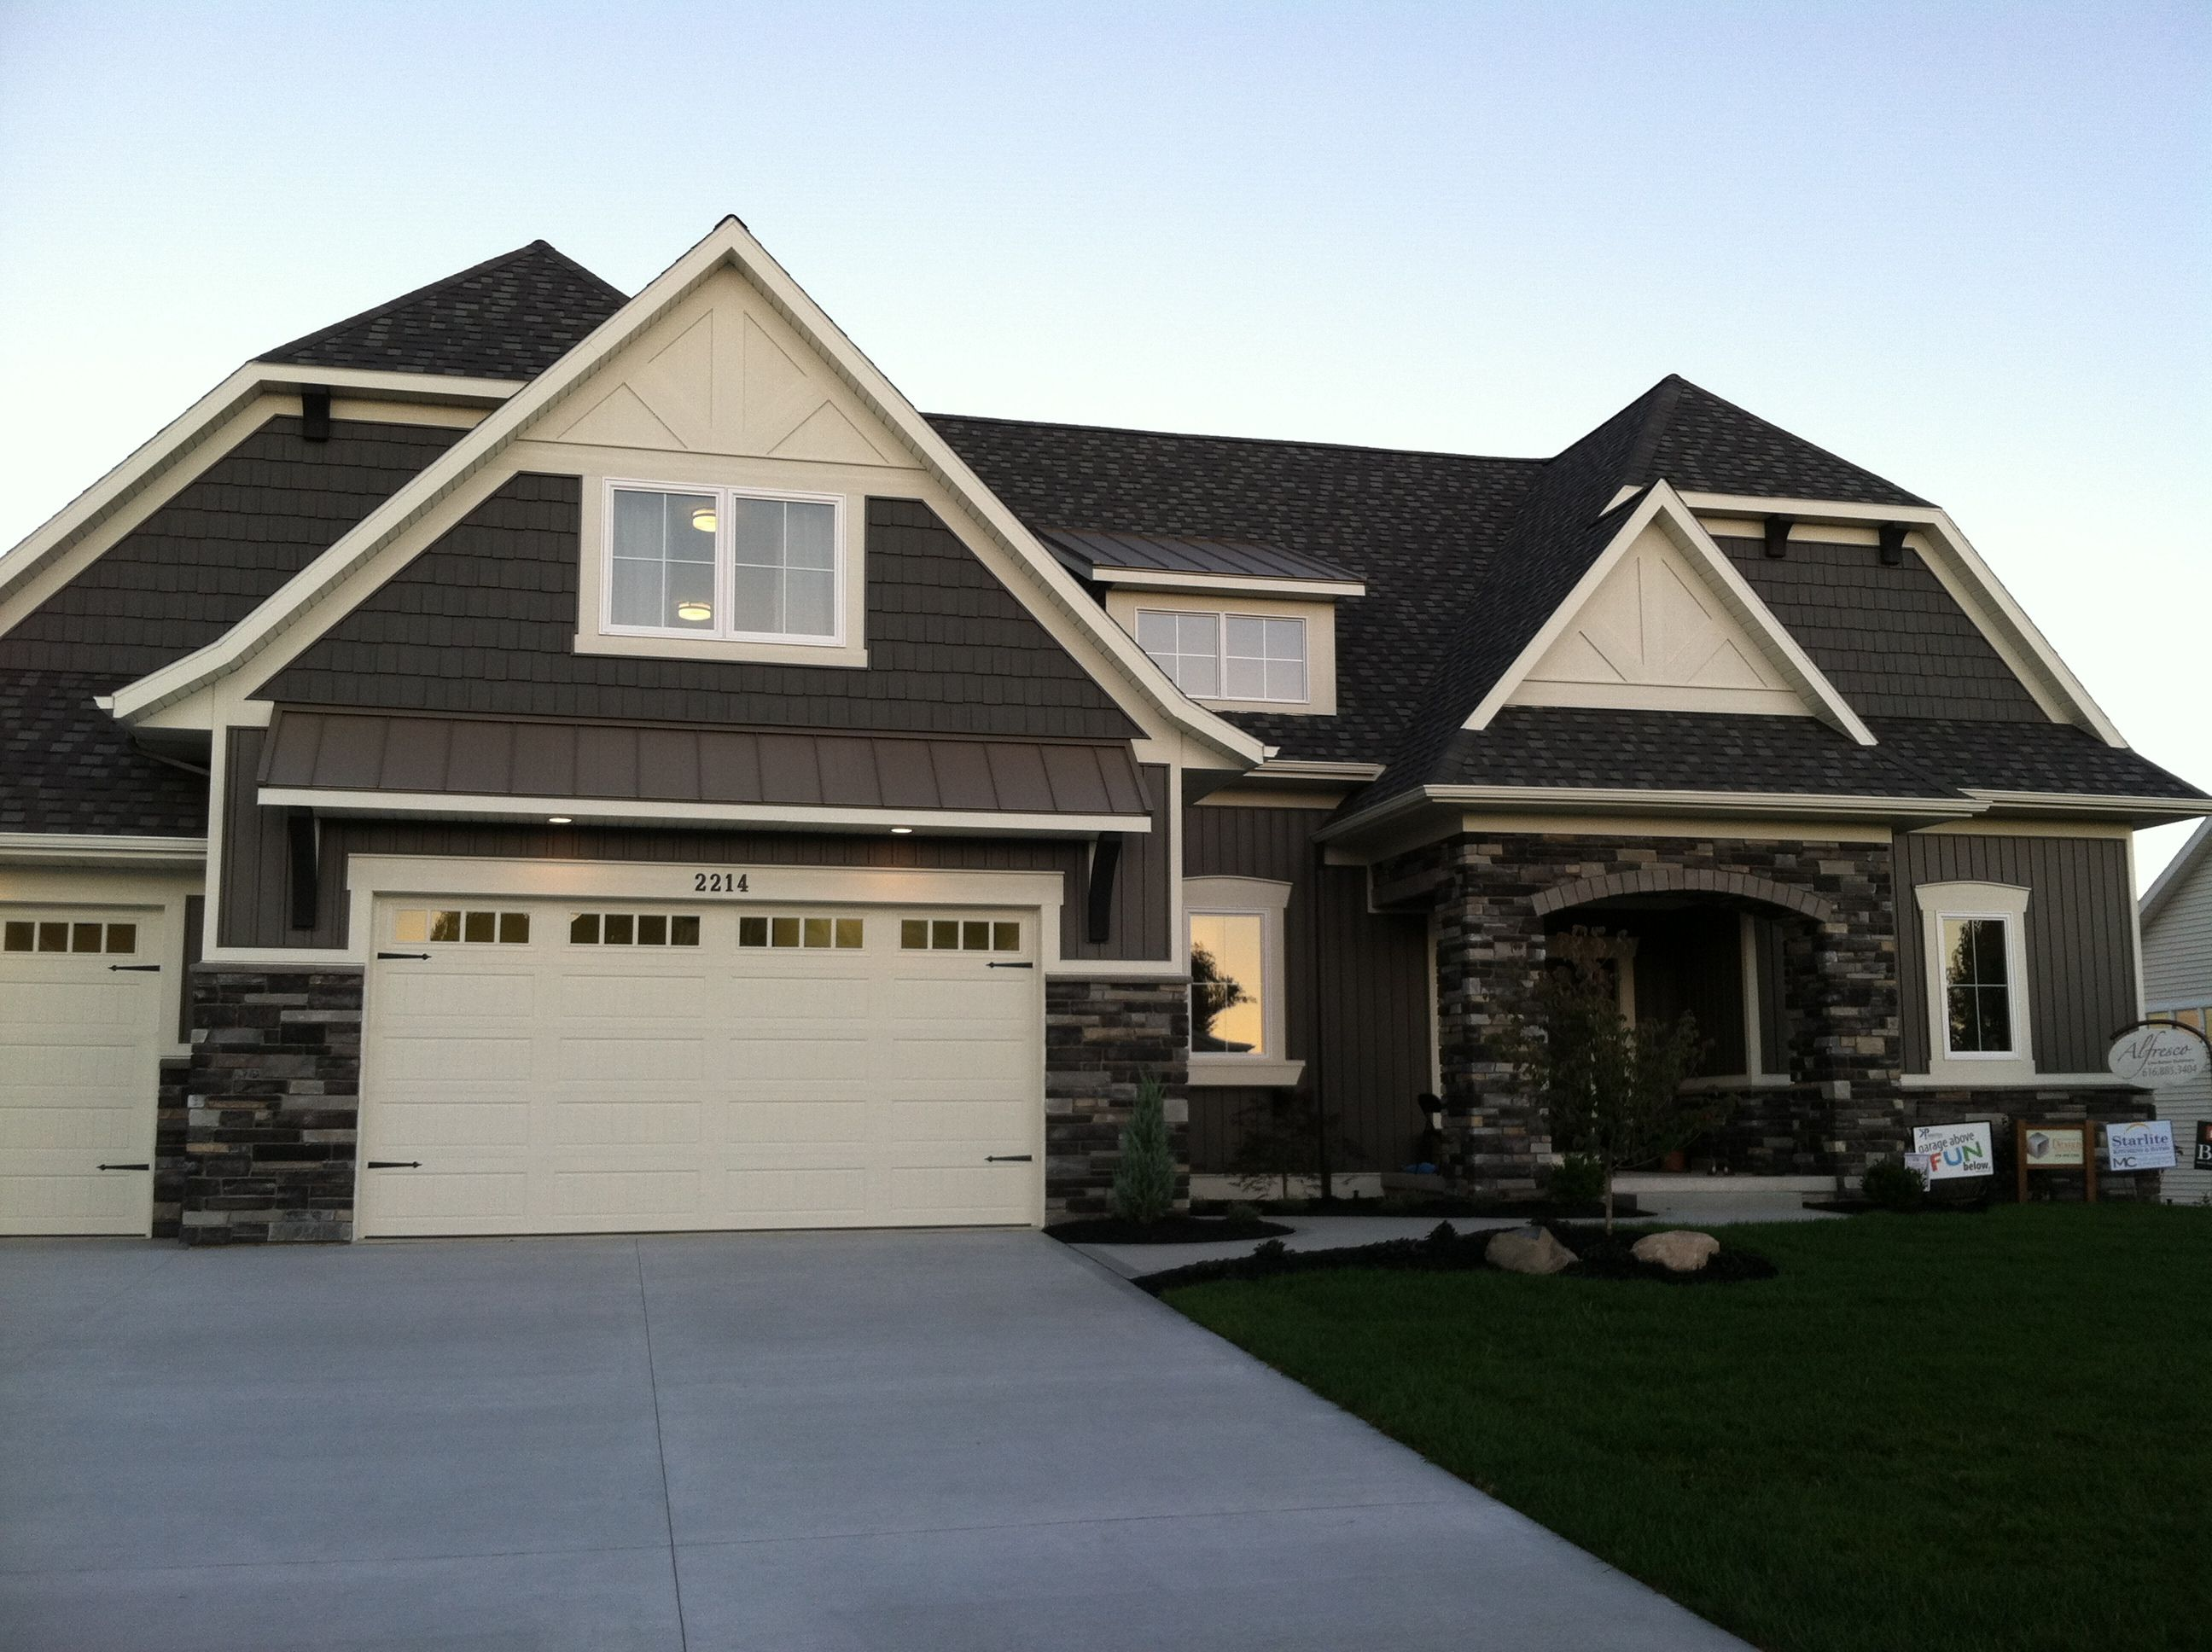 Awesome exterior home color schemes Which color is best for home